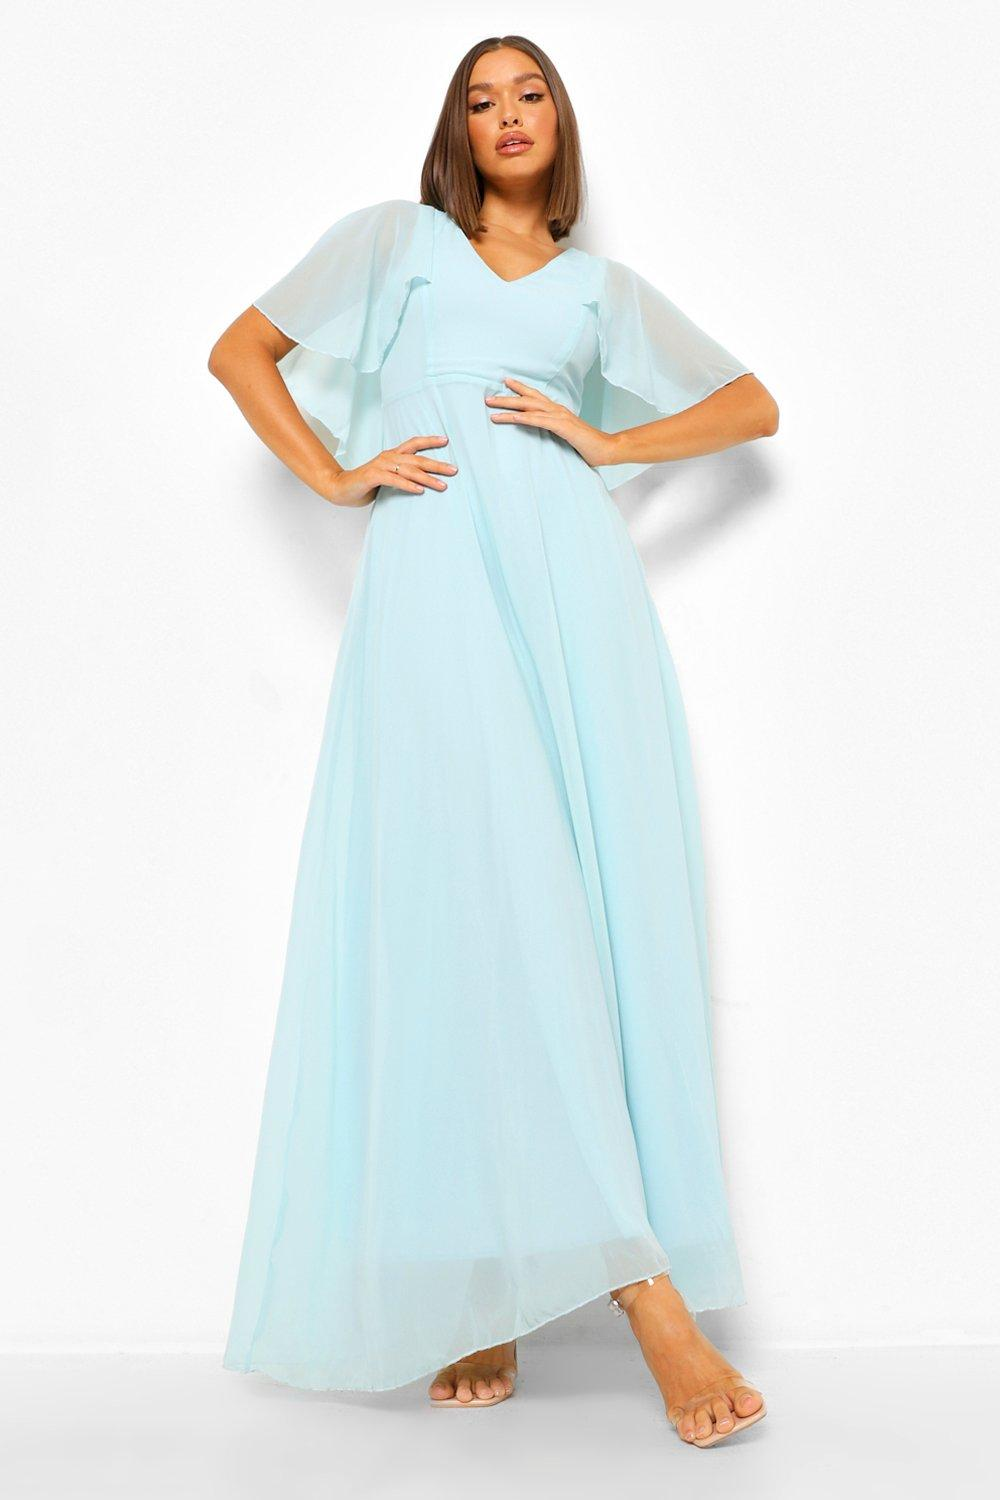 Vintage Evening Dresses and Formal Evening Gowns Chiffon Cape Detail Maxi Dress  AT vintagedancer.com